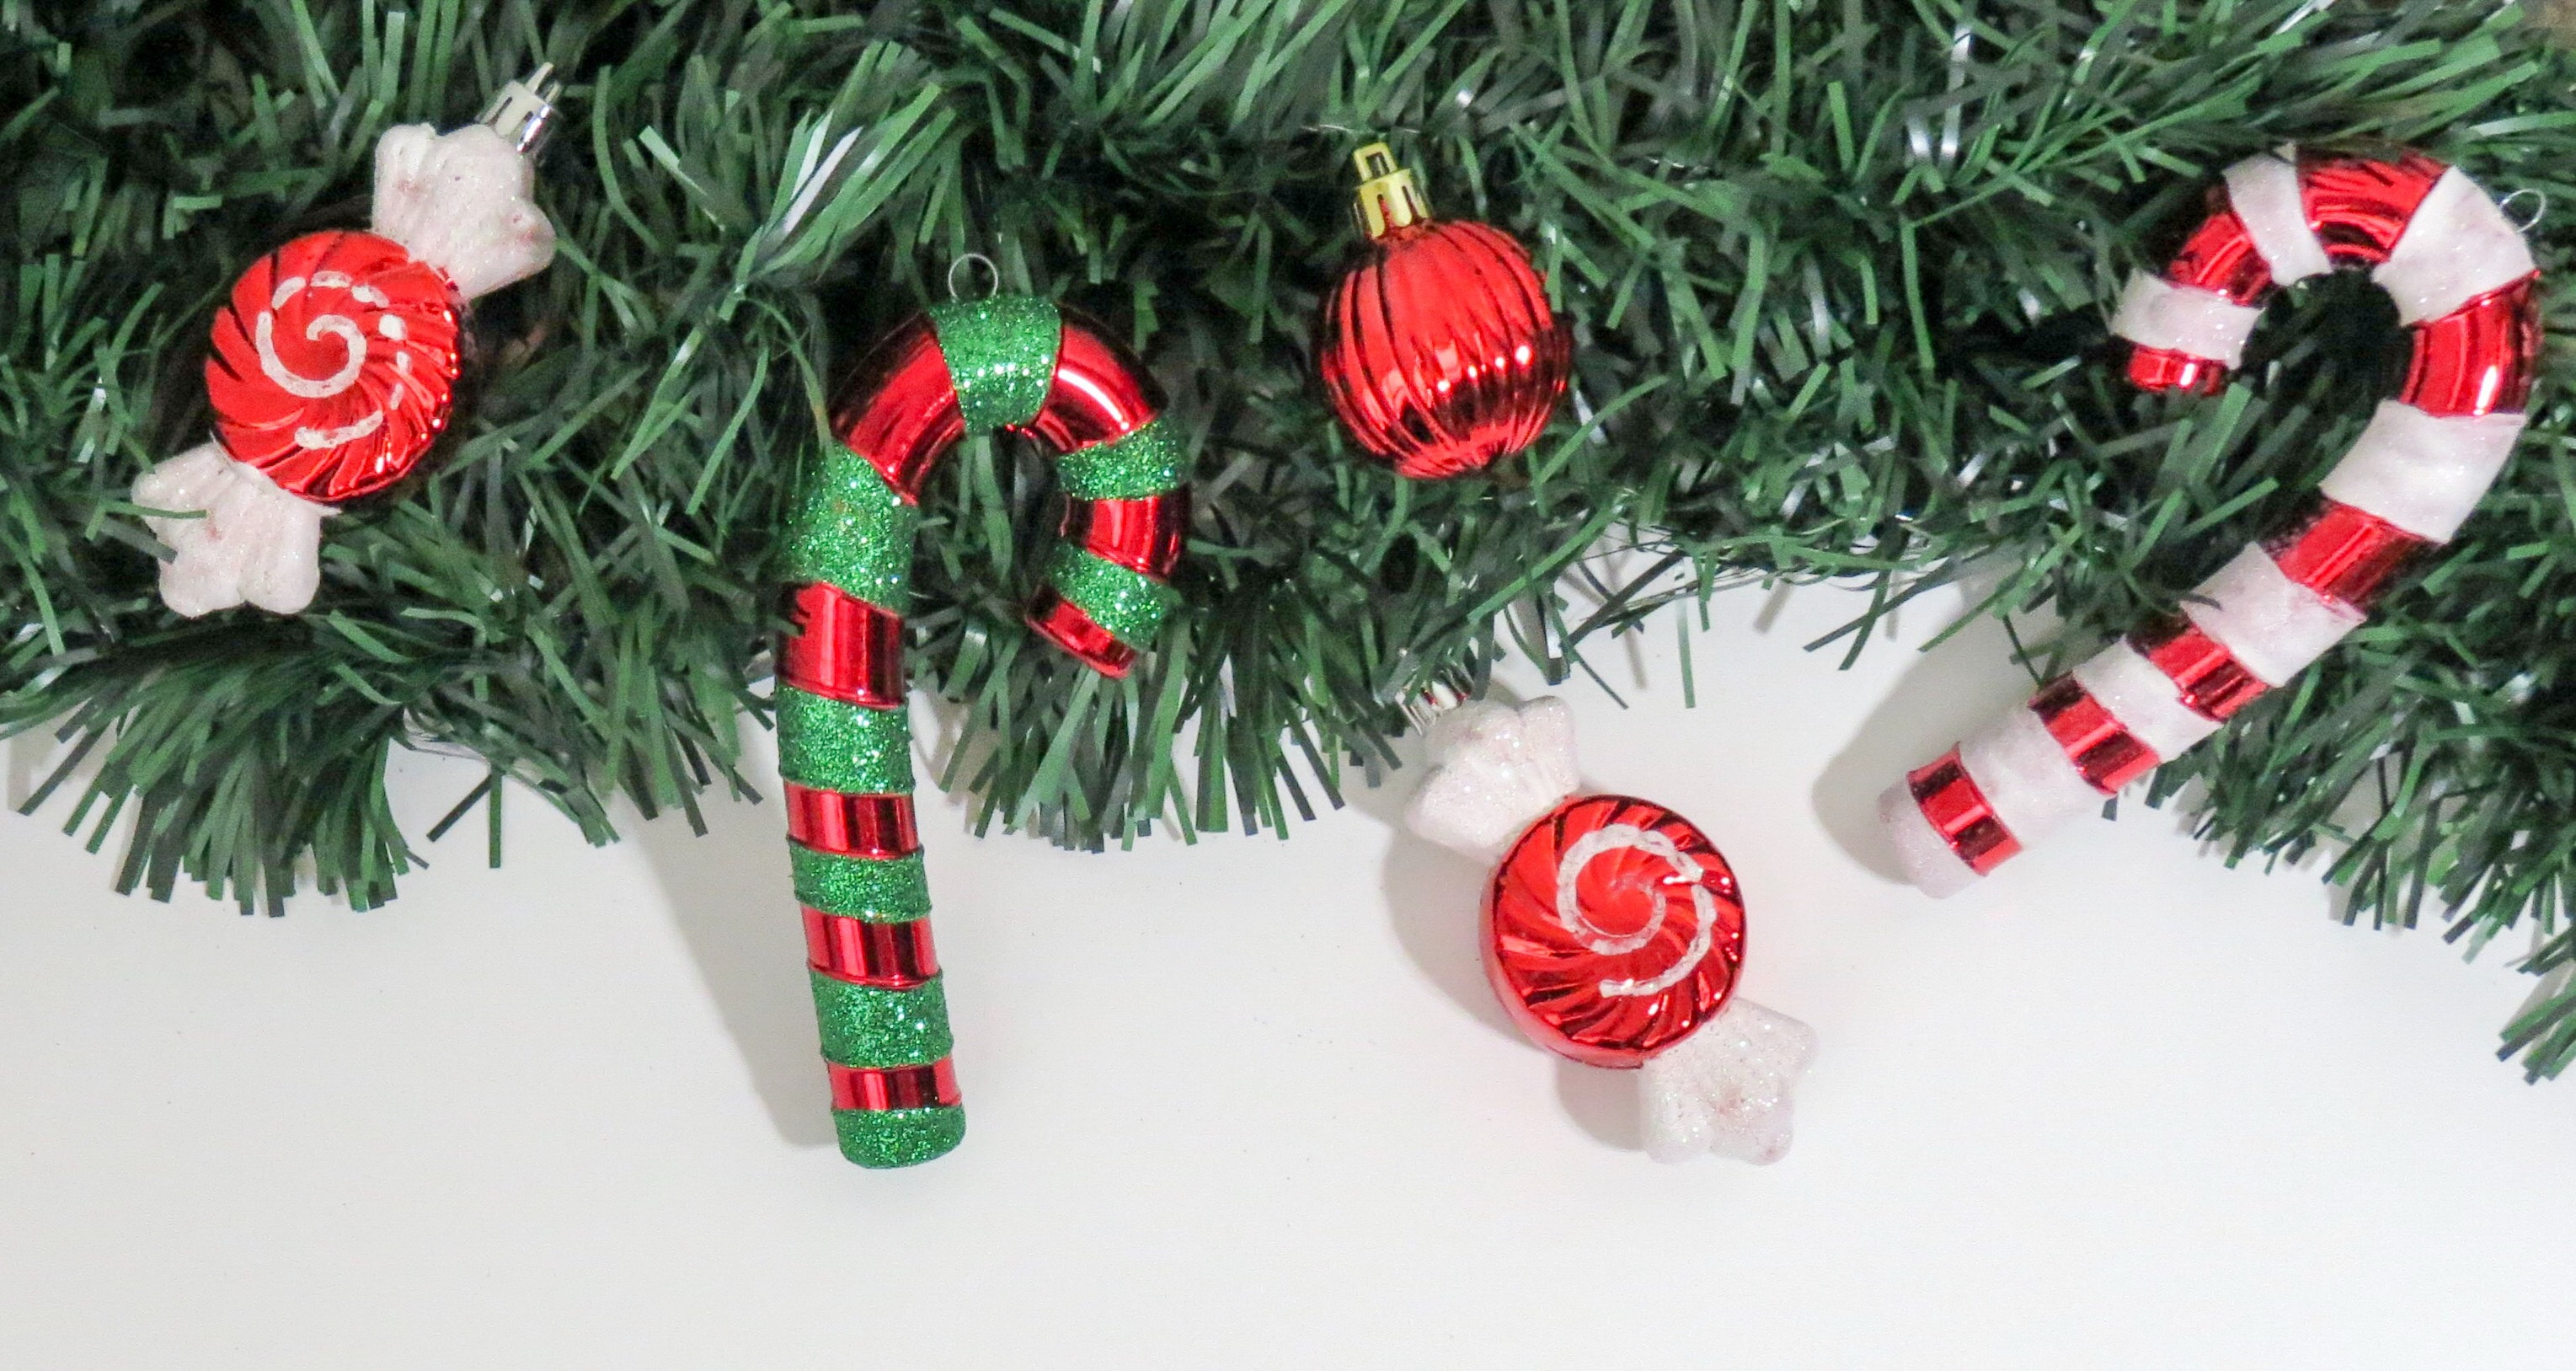 Attendees can participate in an underwater candy cane hunt during the Candy Cane Festival.